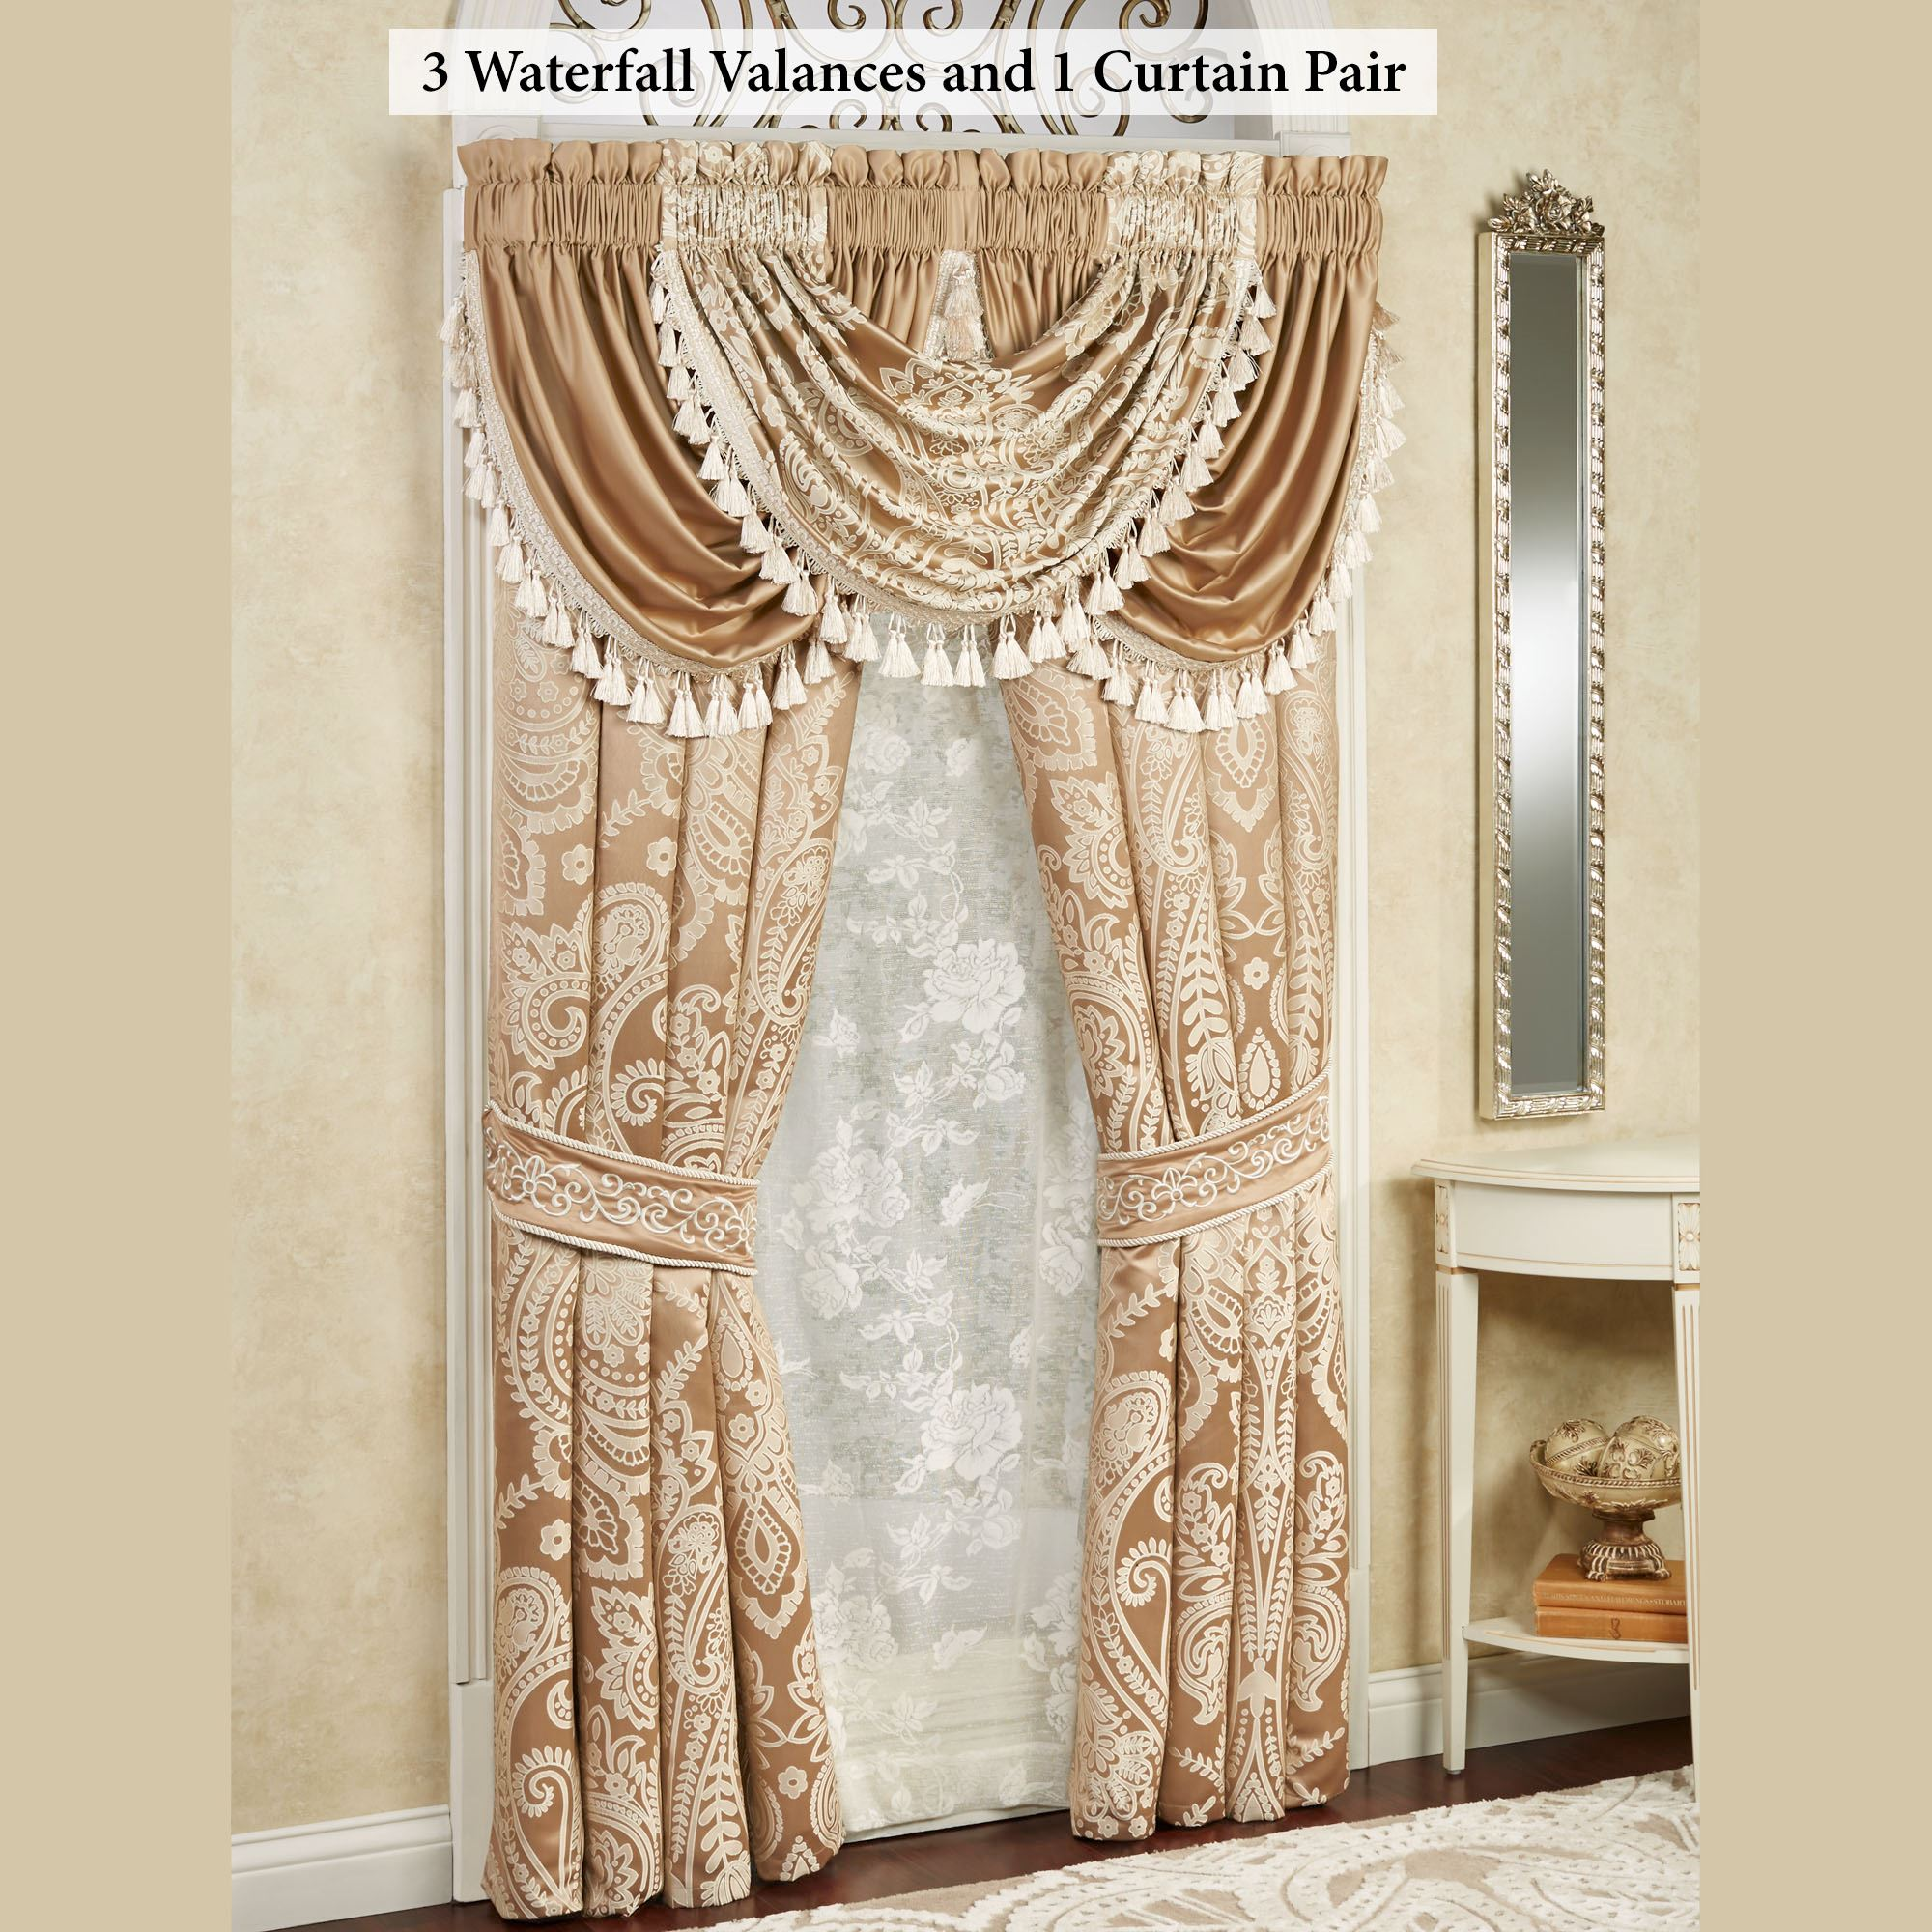 treatments valance waterfall curtain pdx wayfair reviews elements valances dorothy window